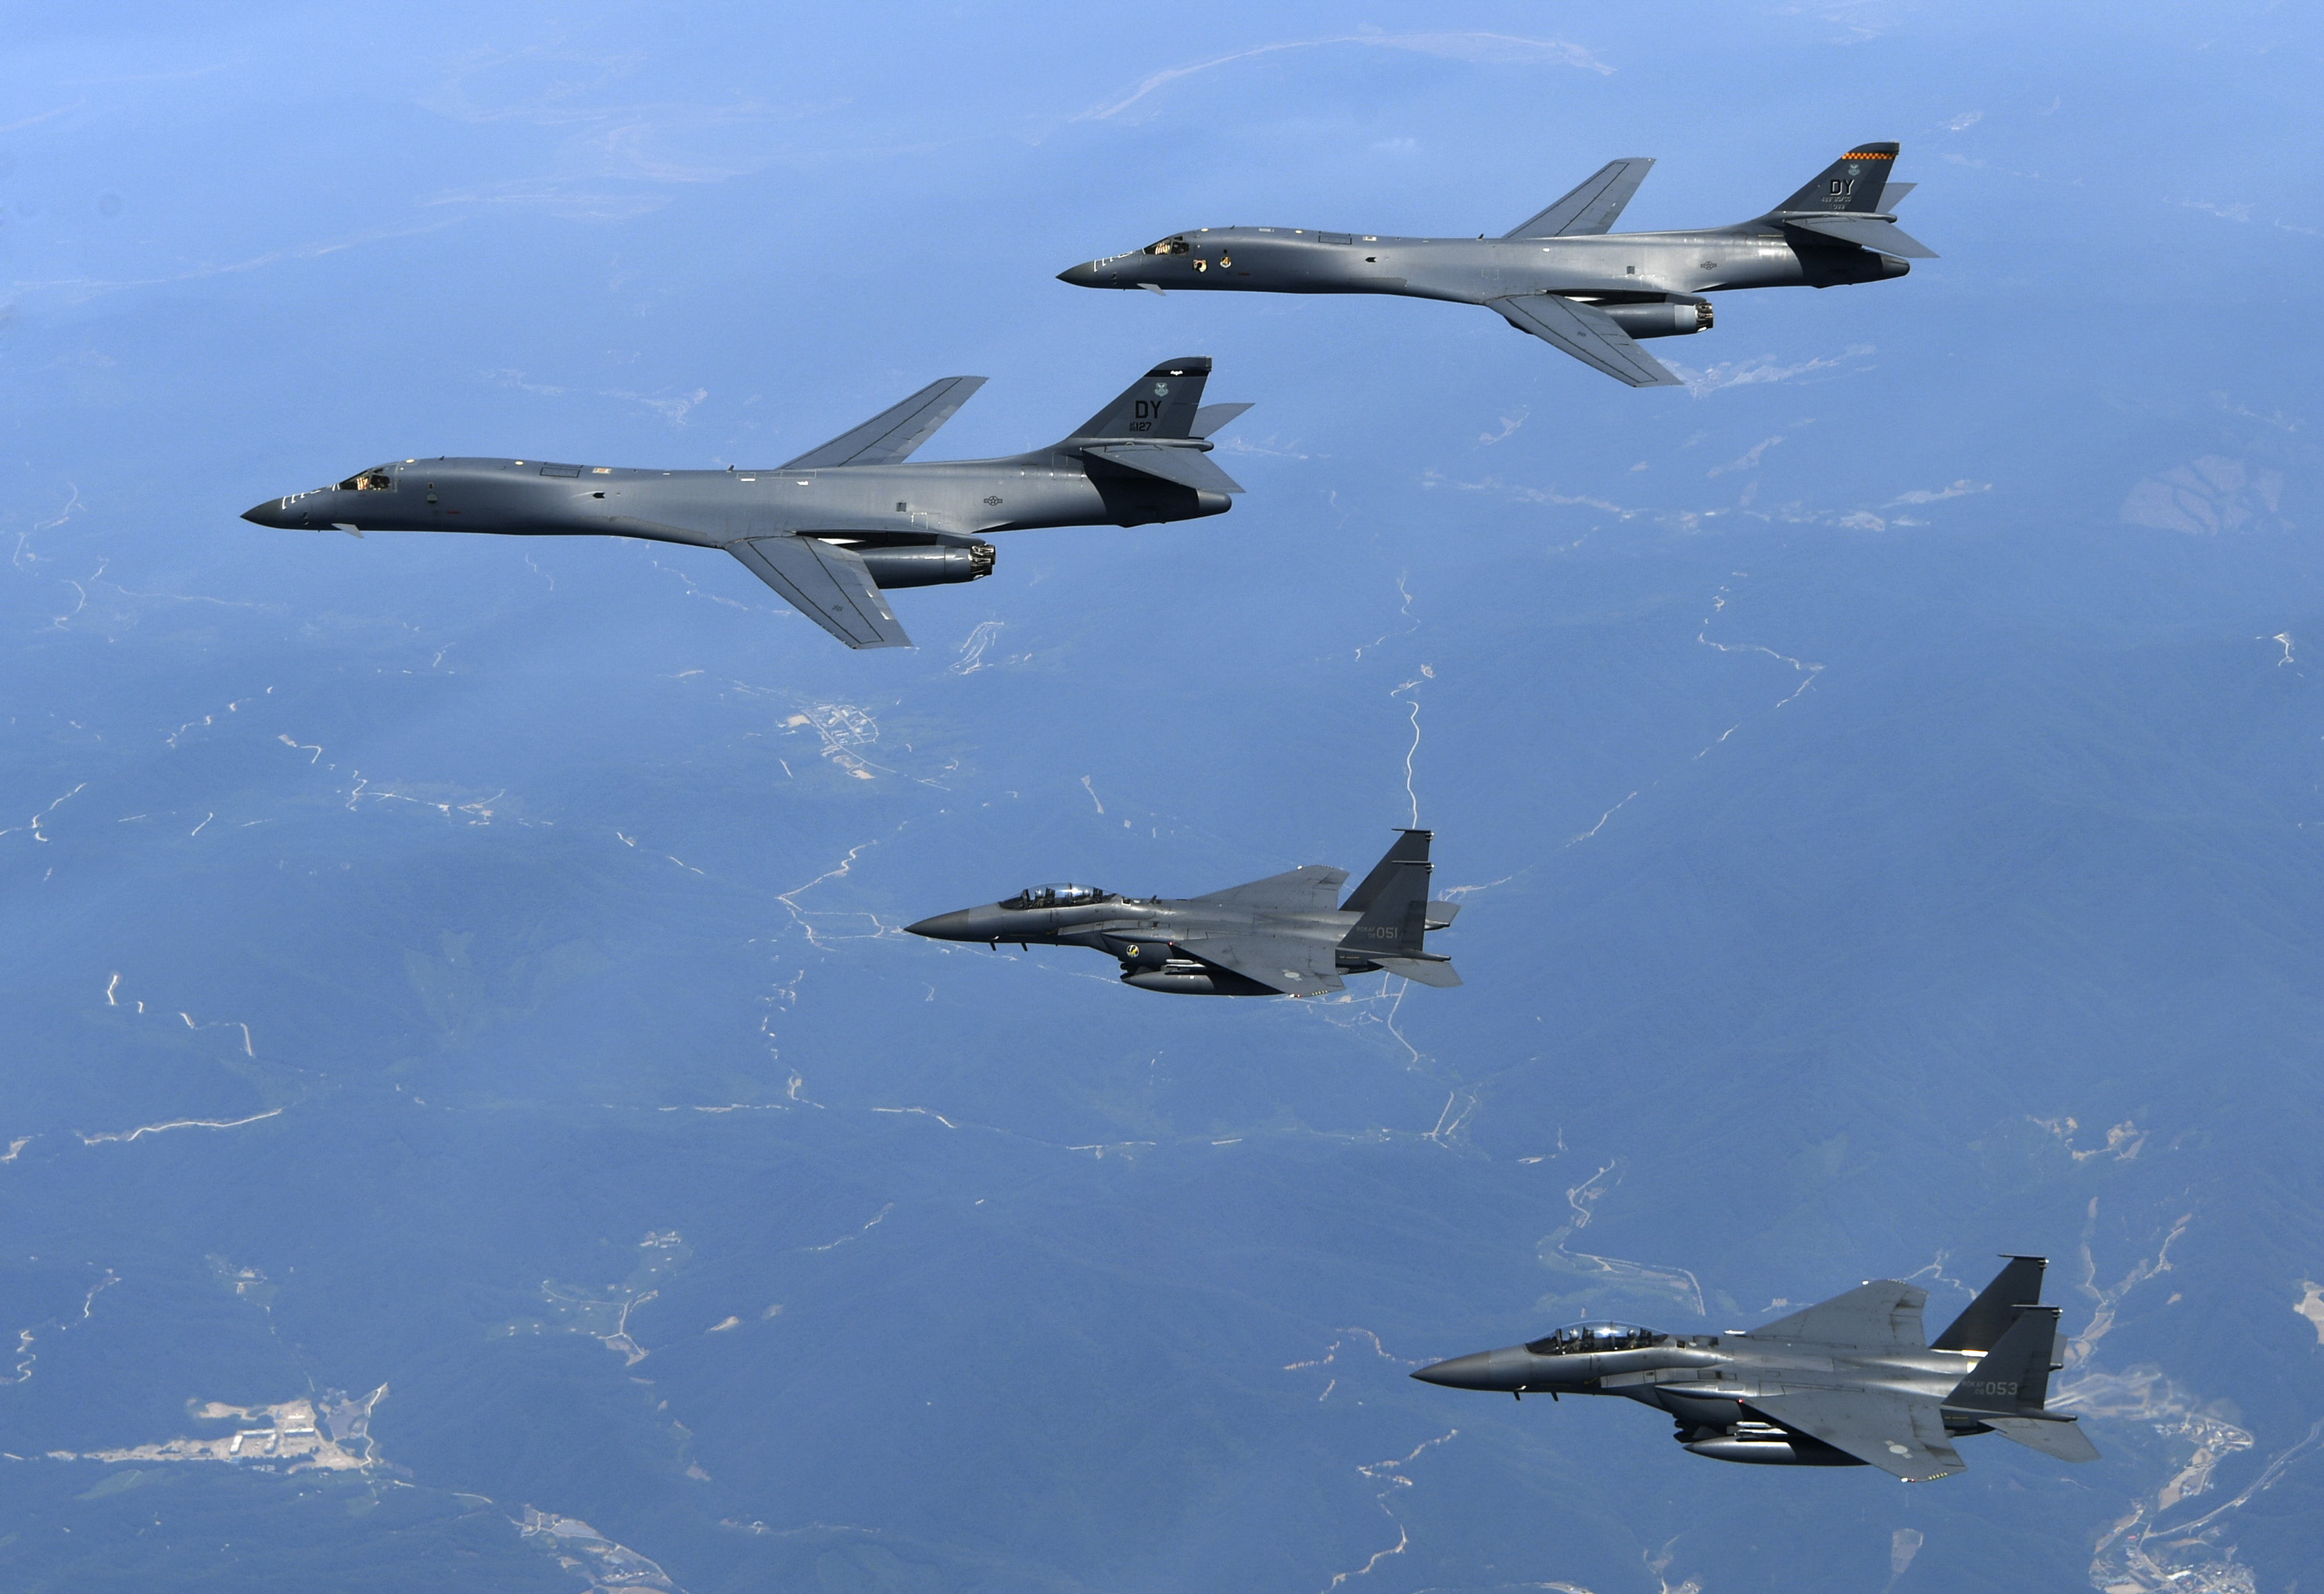 In this Tuesday, June 20, 2017 photo provided by South Korean Defense Ministry, U.S. Air Force B-1B bombers, top, and second from top, and South Korean fighter jets F-15K fly over the Korean Peninsula, South Korea. The United States flew two supersonic bombers over the Korean Peninsula on Tuesday in a show of force against North Korea, South Korean officials said. (South Korean Defense Ministry via AP)